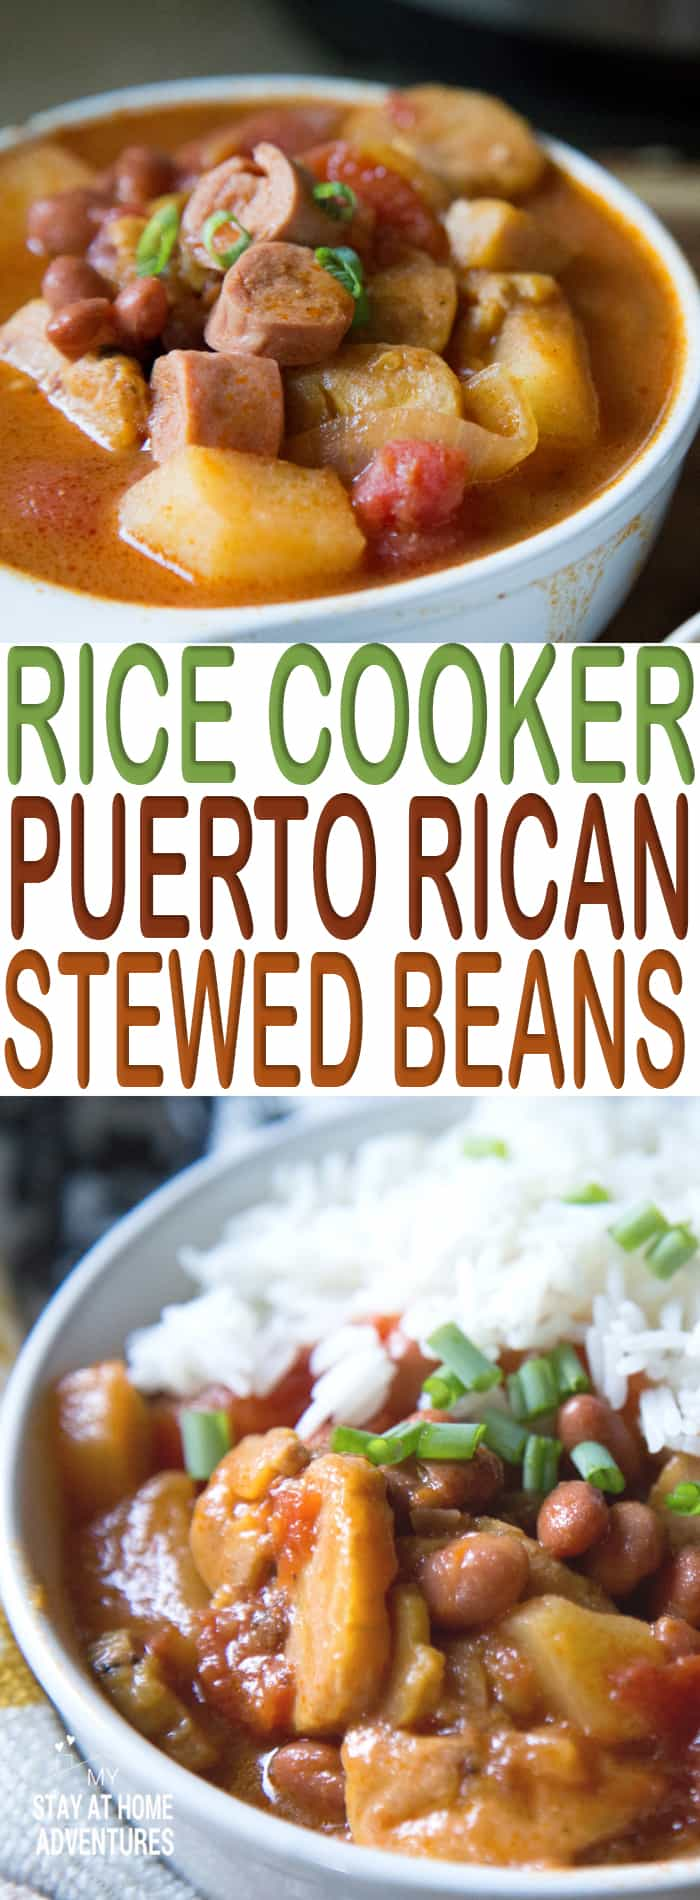 You are going to love this Rice Cooker Puerto Rican Beans! Made using a Hamilton Beach Rice & Hot Cereal Cooker this stewed bean recipe is to die for! #Recipe #yummy #PuertoRican #Good #beans #delicious